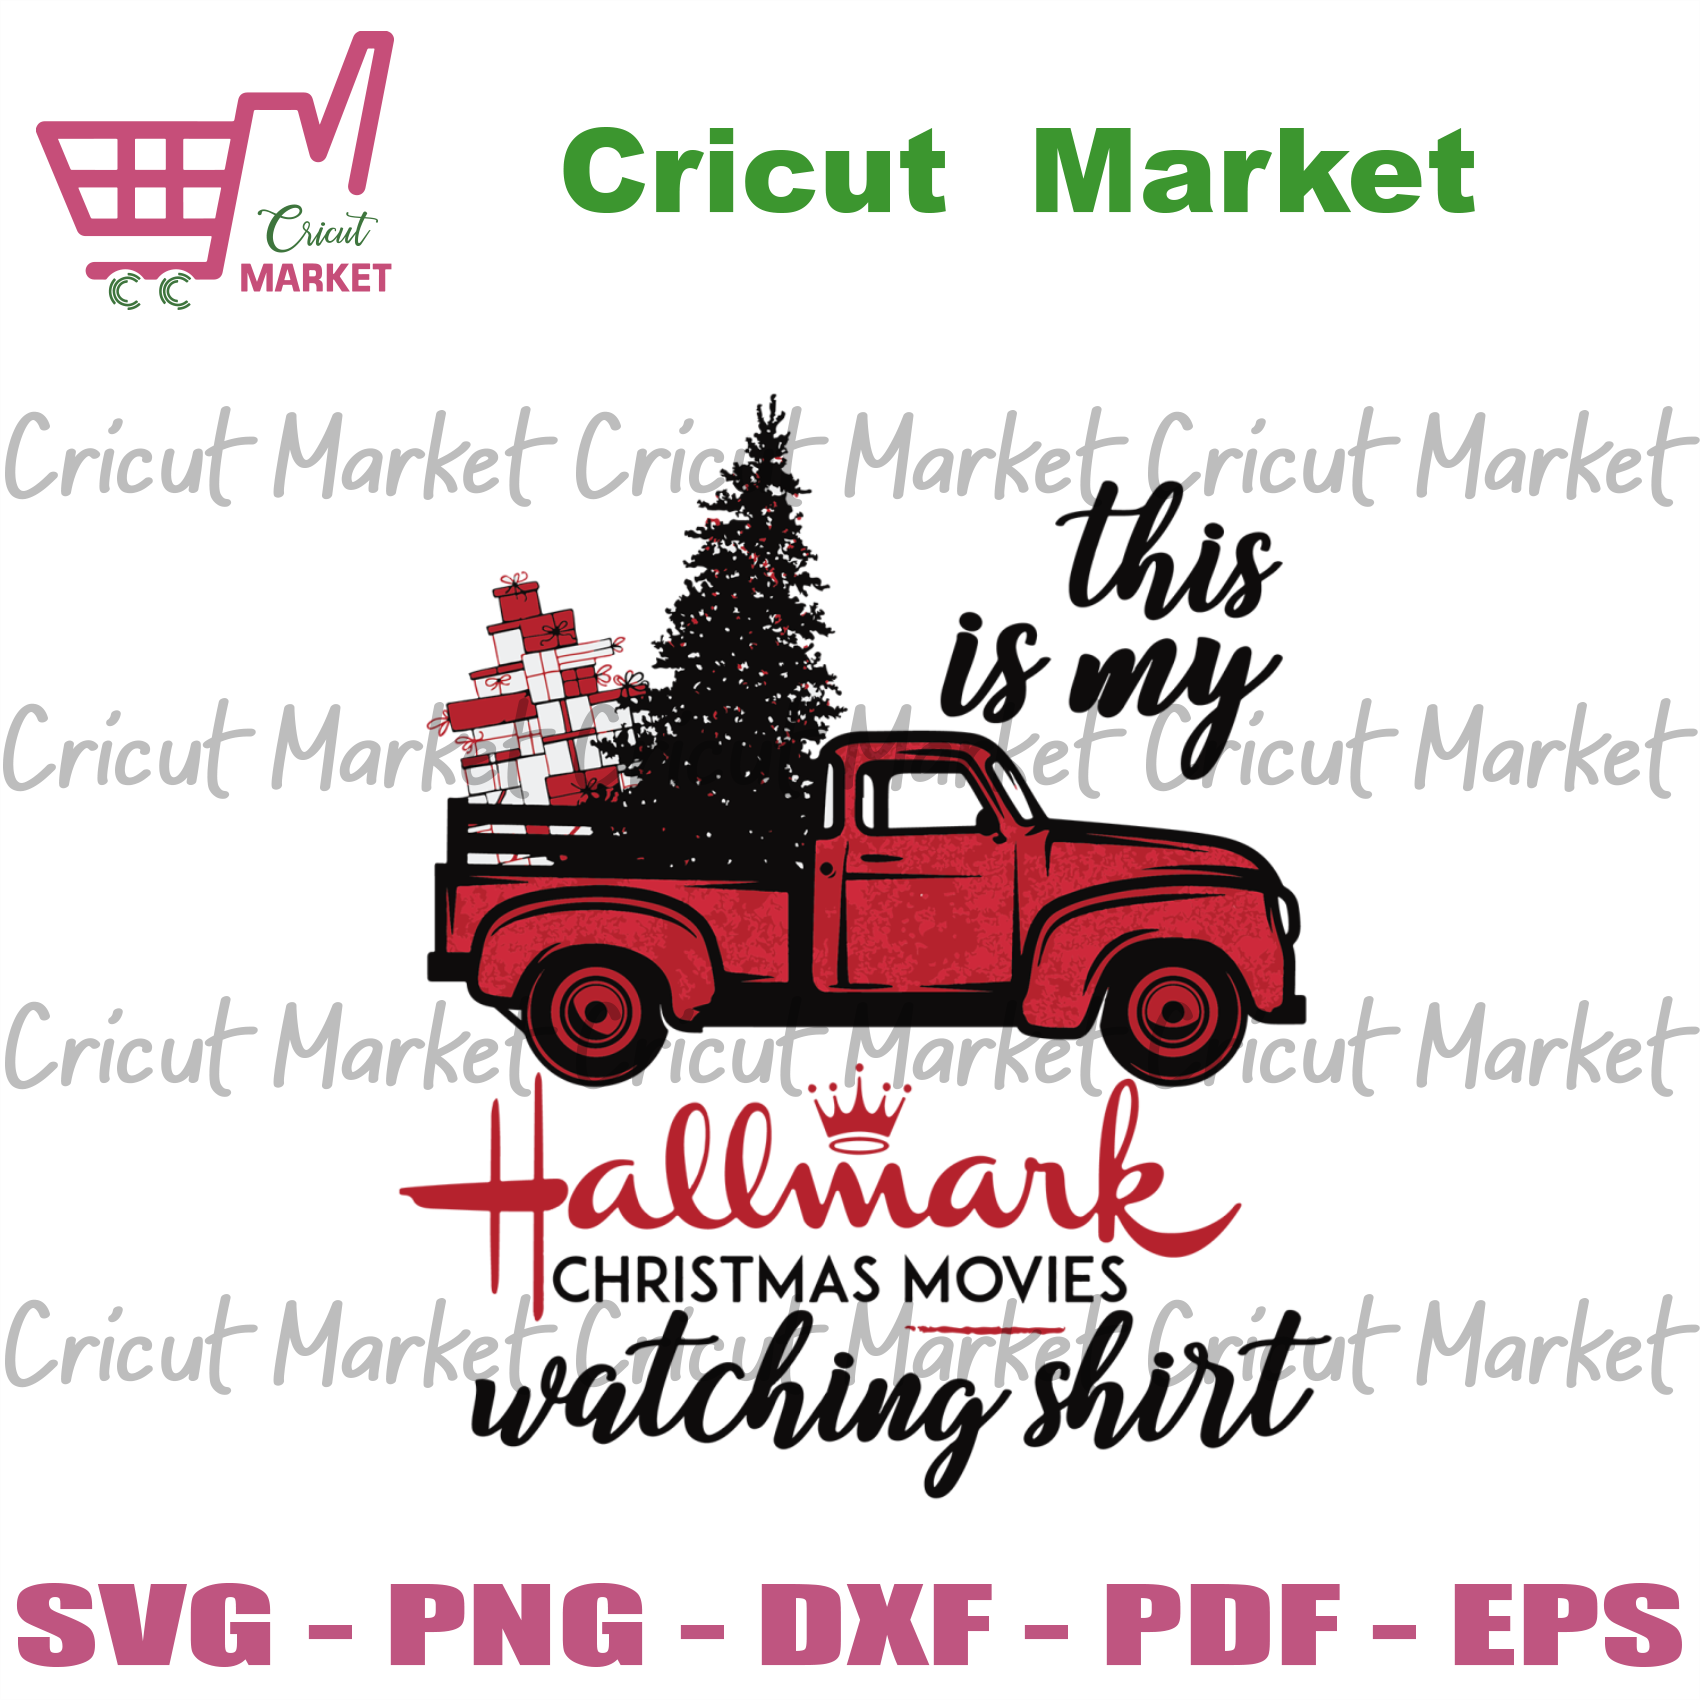 This Is My Hallmark Christmas Movie Watching Shirt Red Truck, Christmas Svg, Hallmark Svg, Christmas Hallmark Svg, Truck Svg, Movie Svg, Christmas Gifts, Merry Christmas, Christmas Holiday, C